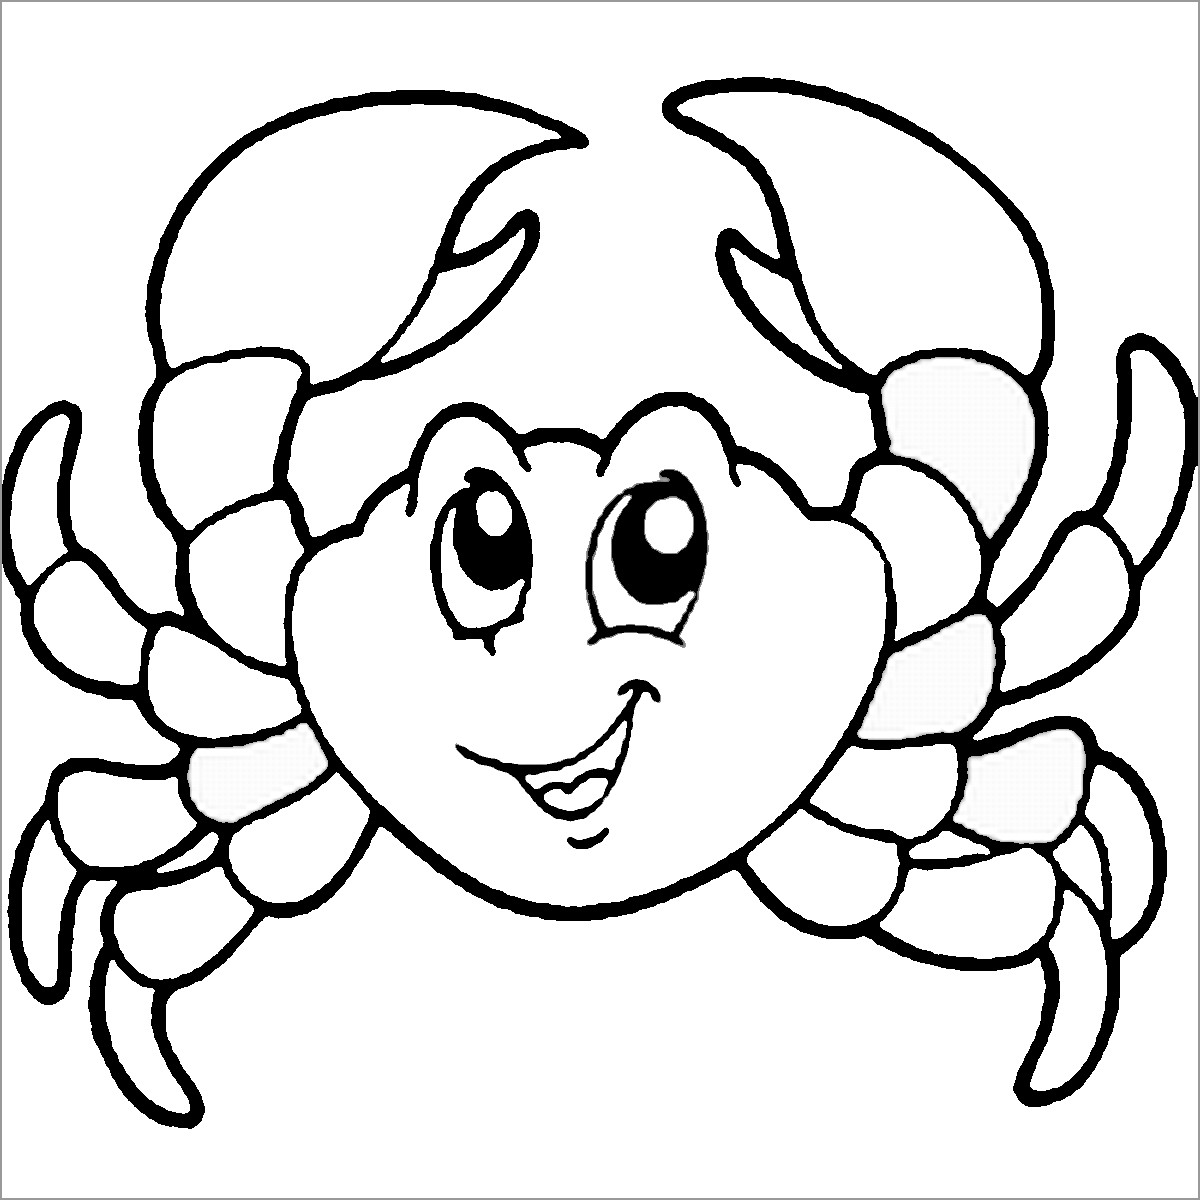 coloring pages crab printable crab coloring pages for kids coloring pages crab